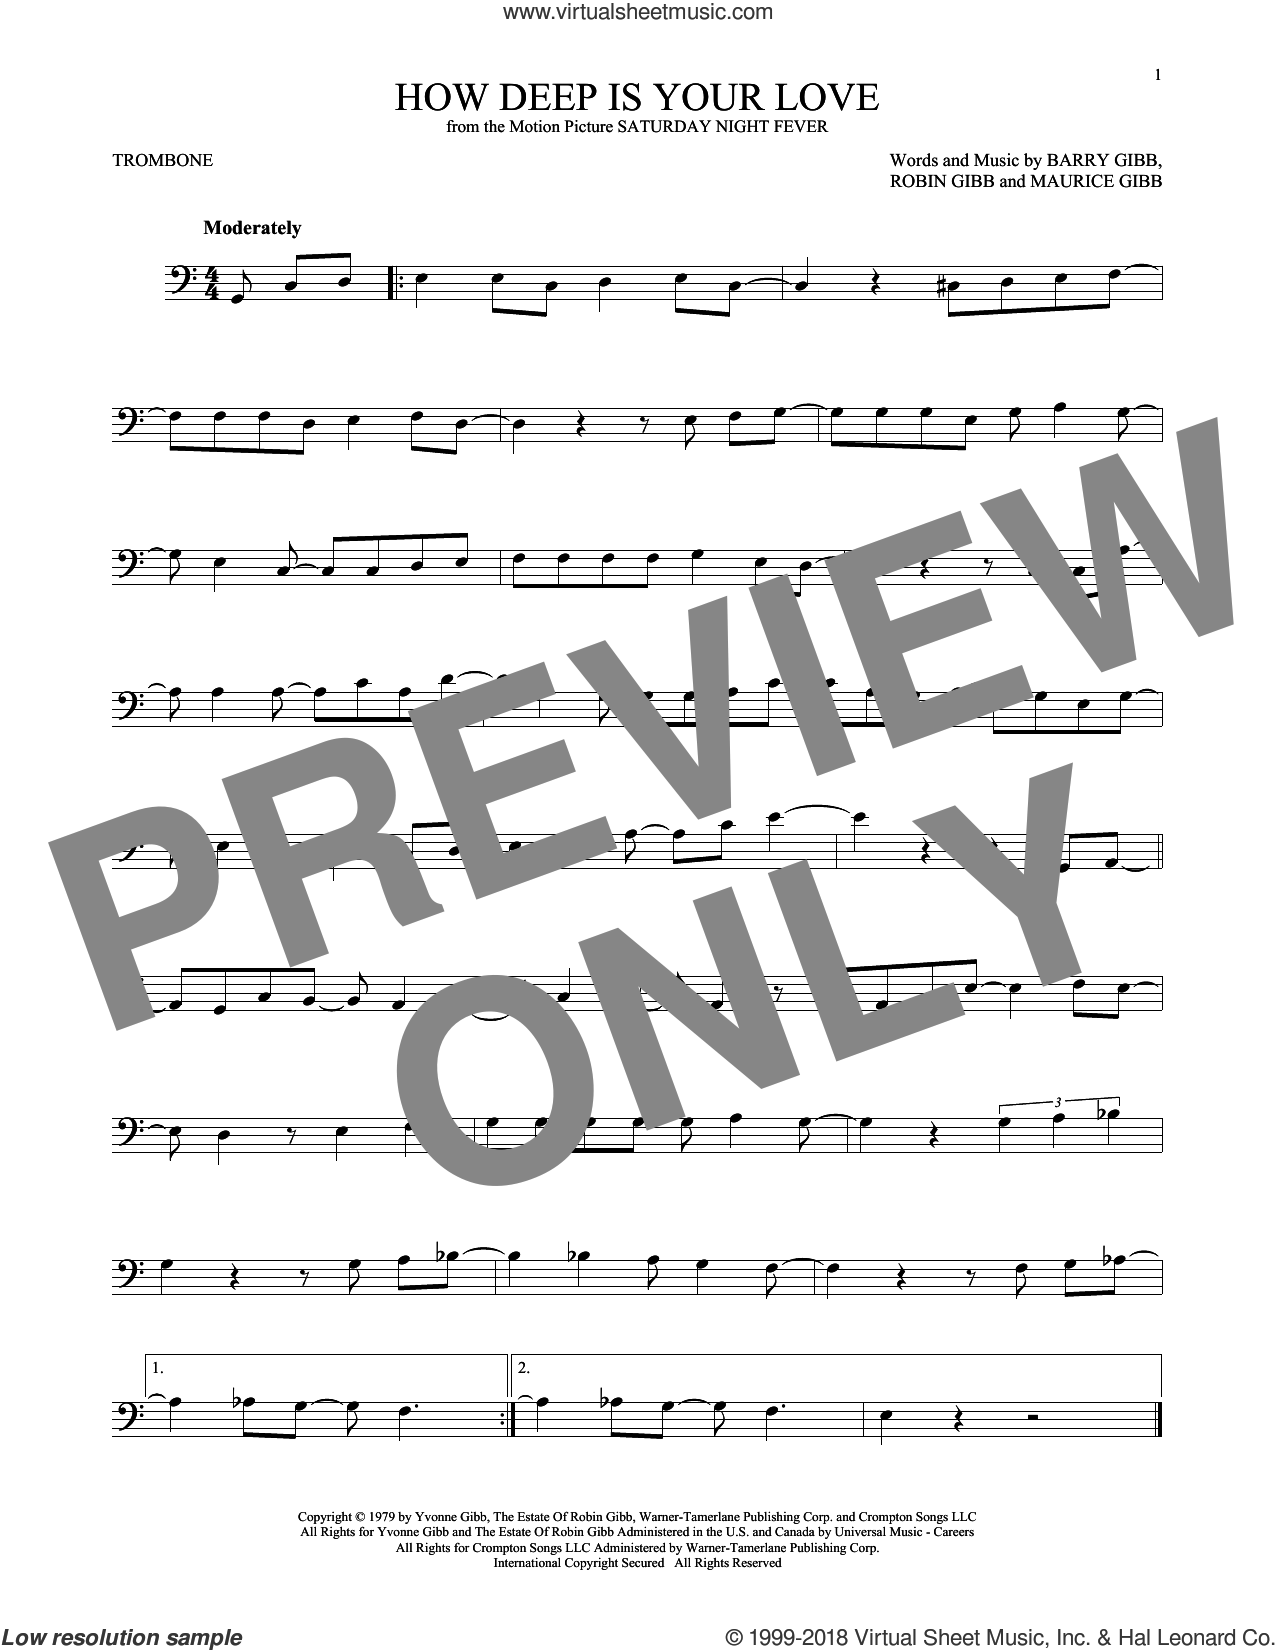 How Deep Is Your Love sheet music for trombone solo by Barry Gibb, Bee Gees, Maurice Gibb and Robin Gibb, intermediate skill level